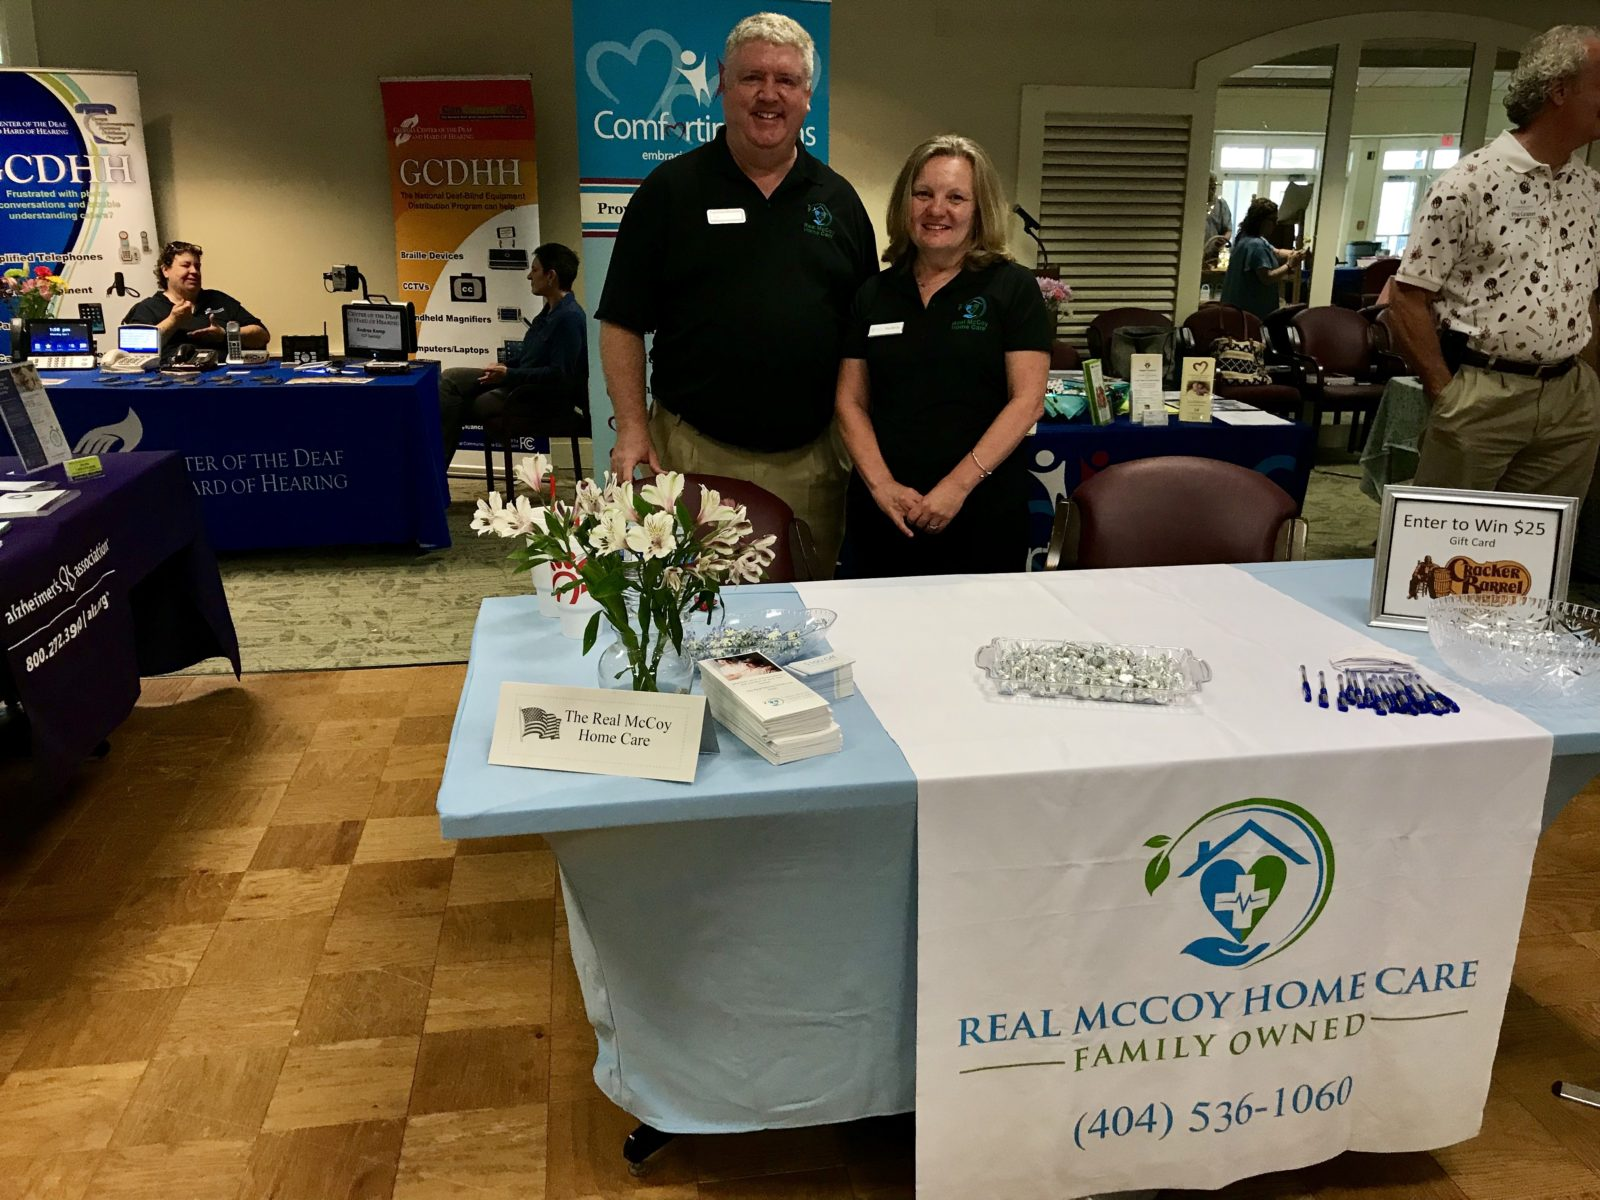 Home Care Services East Cobb GA - Real McCoy Home Care Celebrates at East Cobb Community Fair